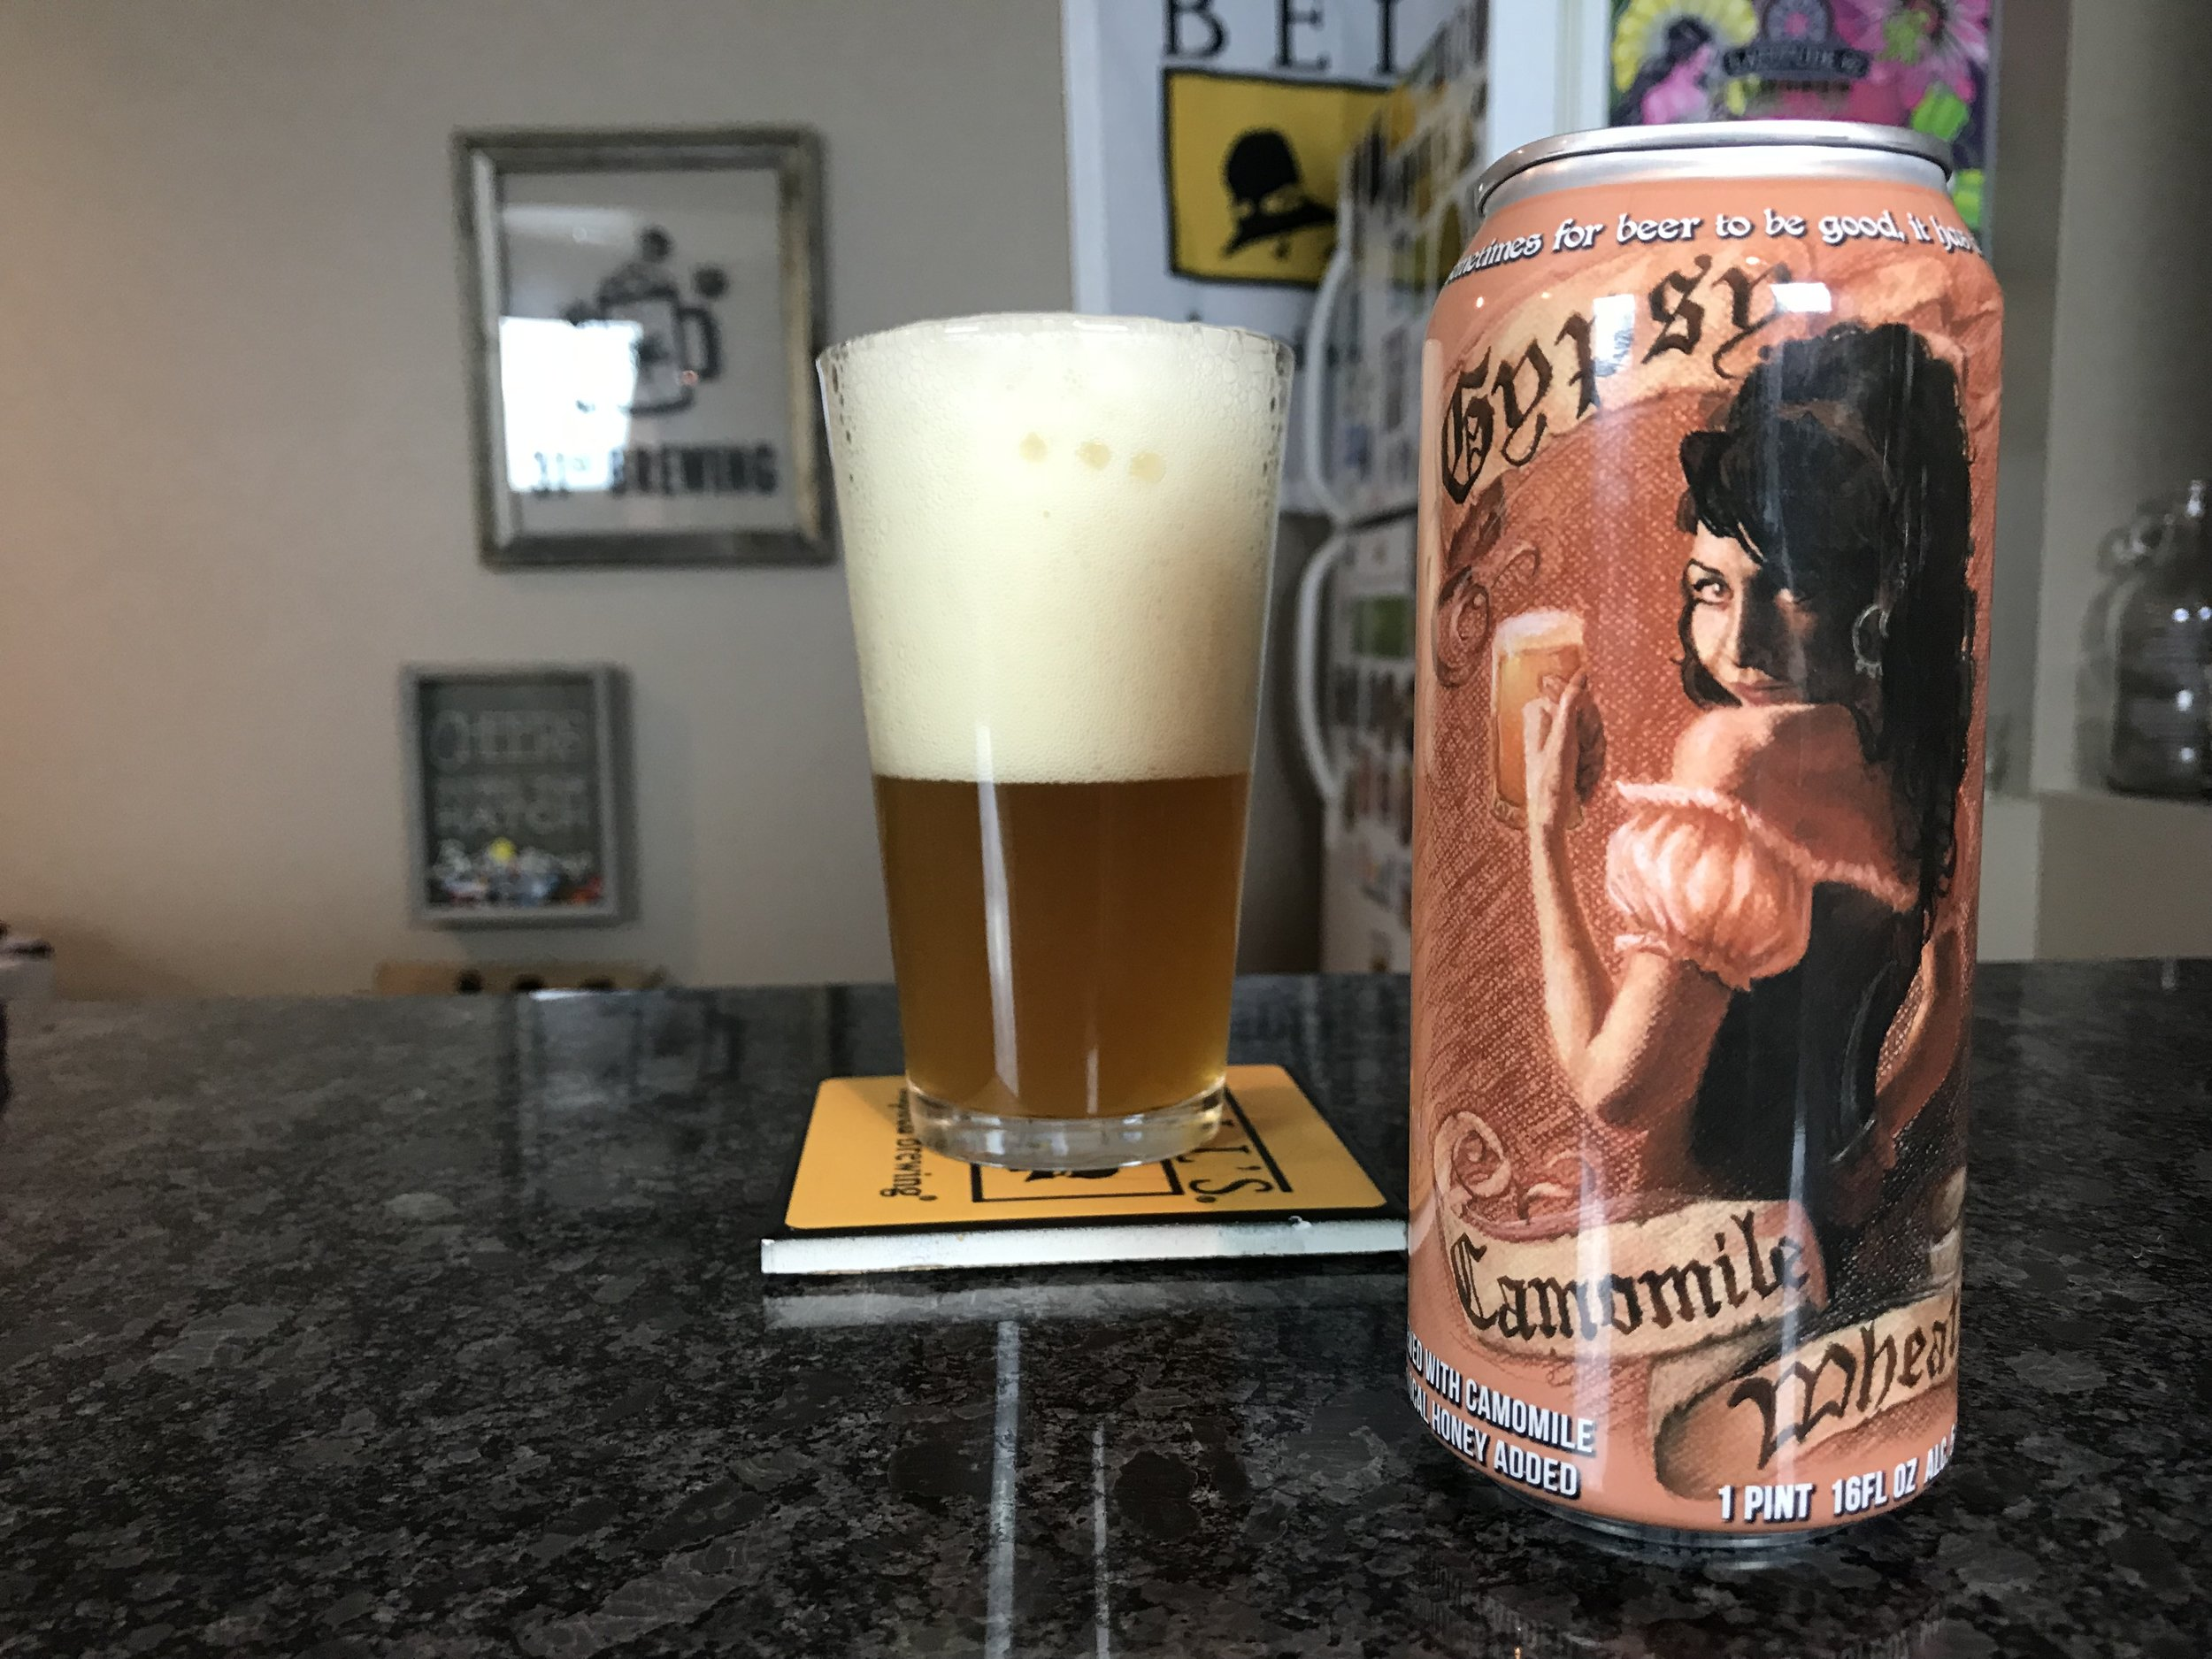 Gypsy Camonile 5.8% ABV - Want to see the Video review? Click on the image.